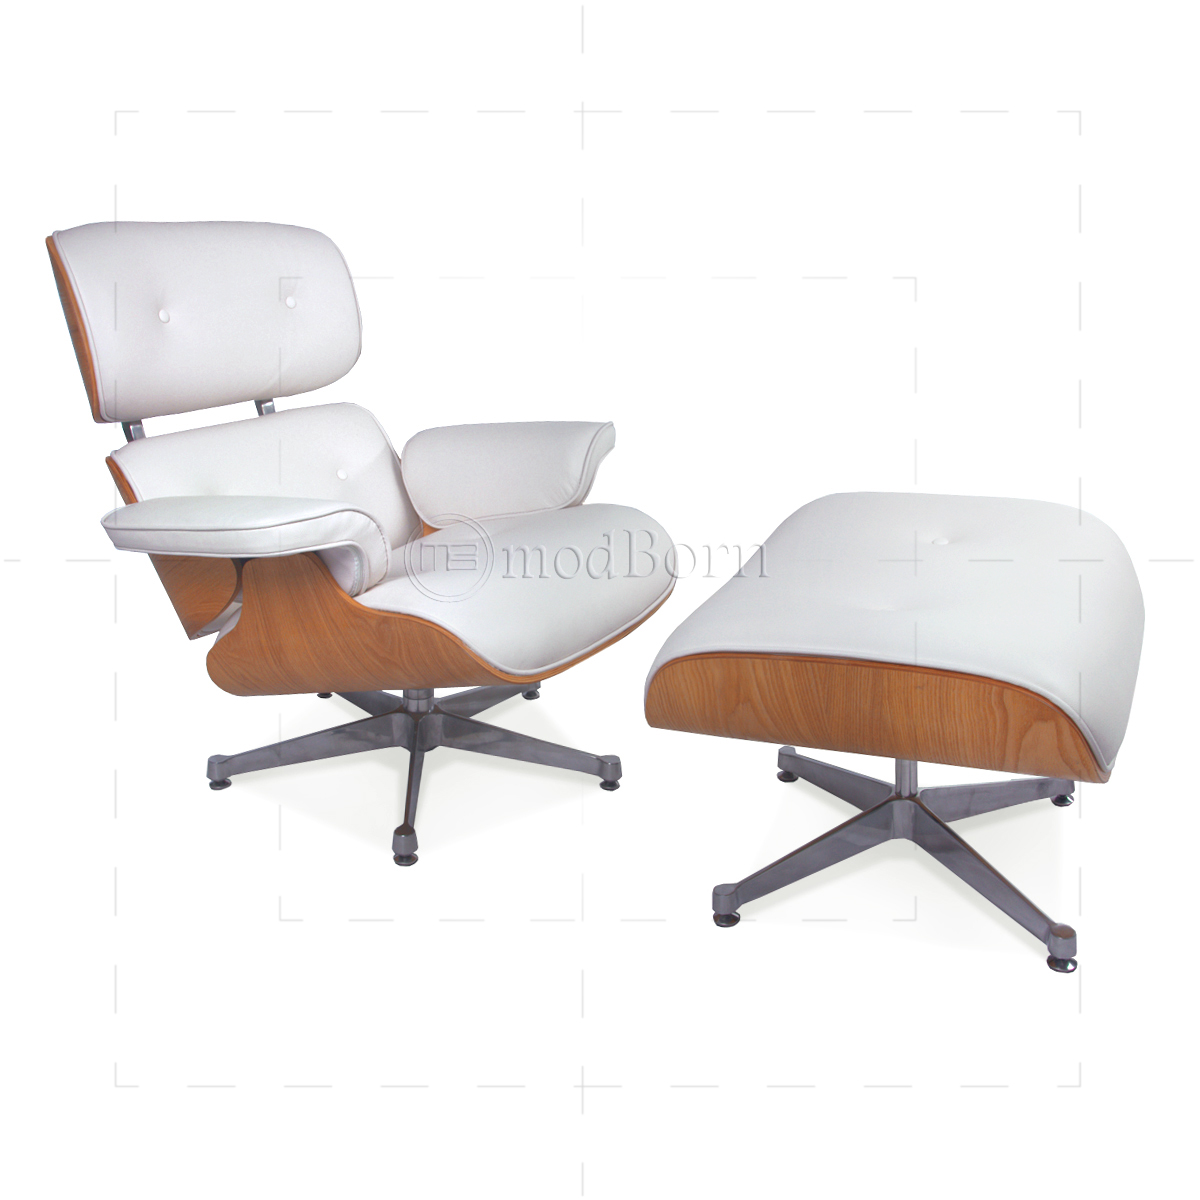 Awe Inspiring Eames Style Lounge Chair And Ottoman White Leather Ash Unemploymentrelief Wooden Chair Designs For Living Room Unemploymentrelieforg